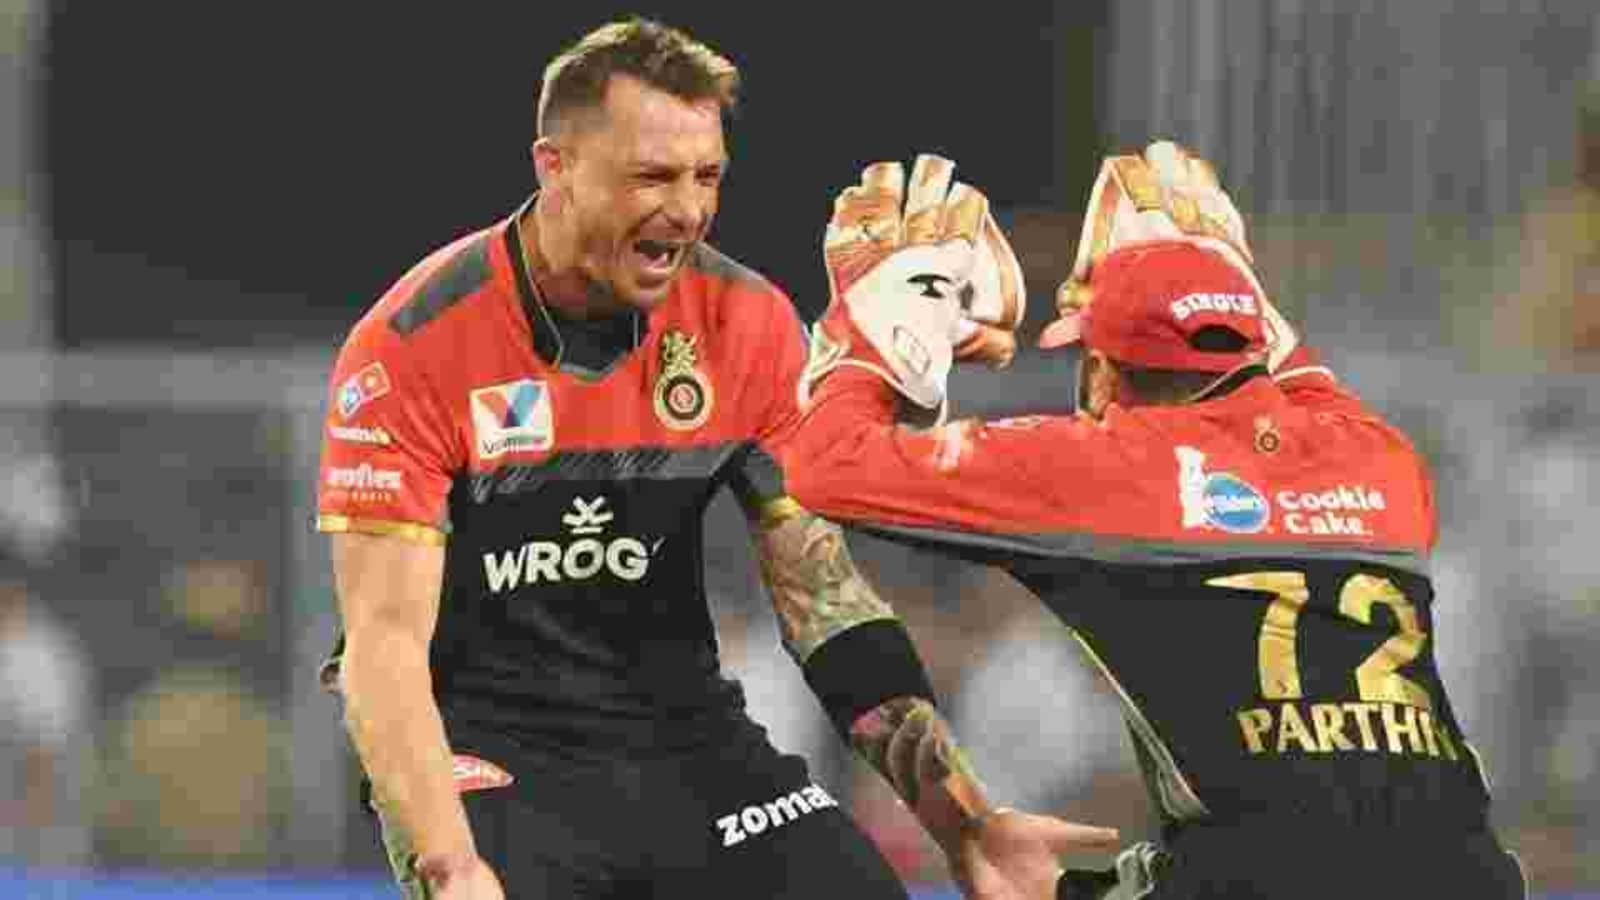 'My words never intended to insult or degrade': Dale Steyn tweets apology for remark on IPL - Hindustan Times